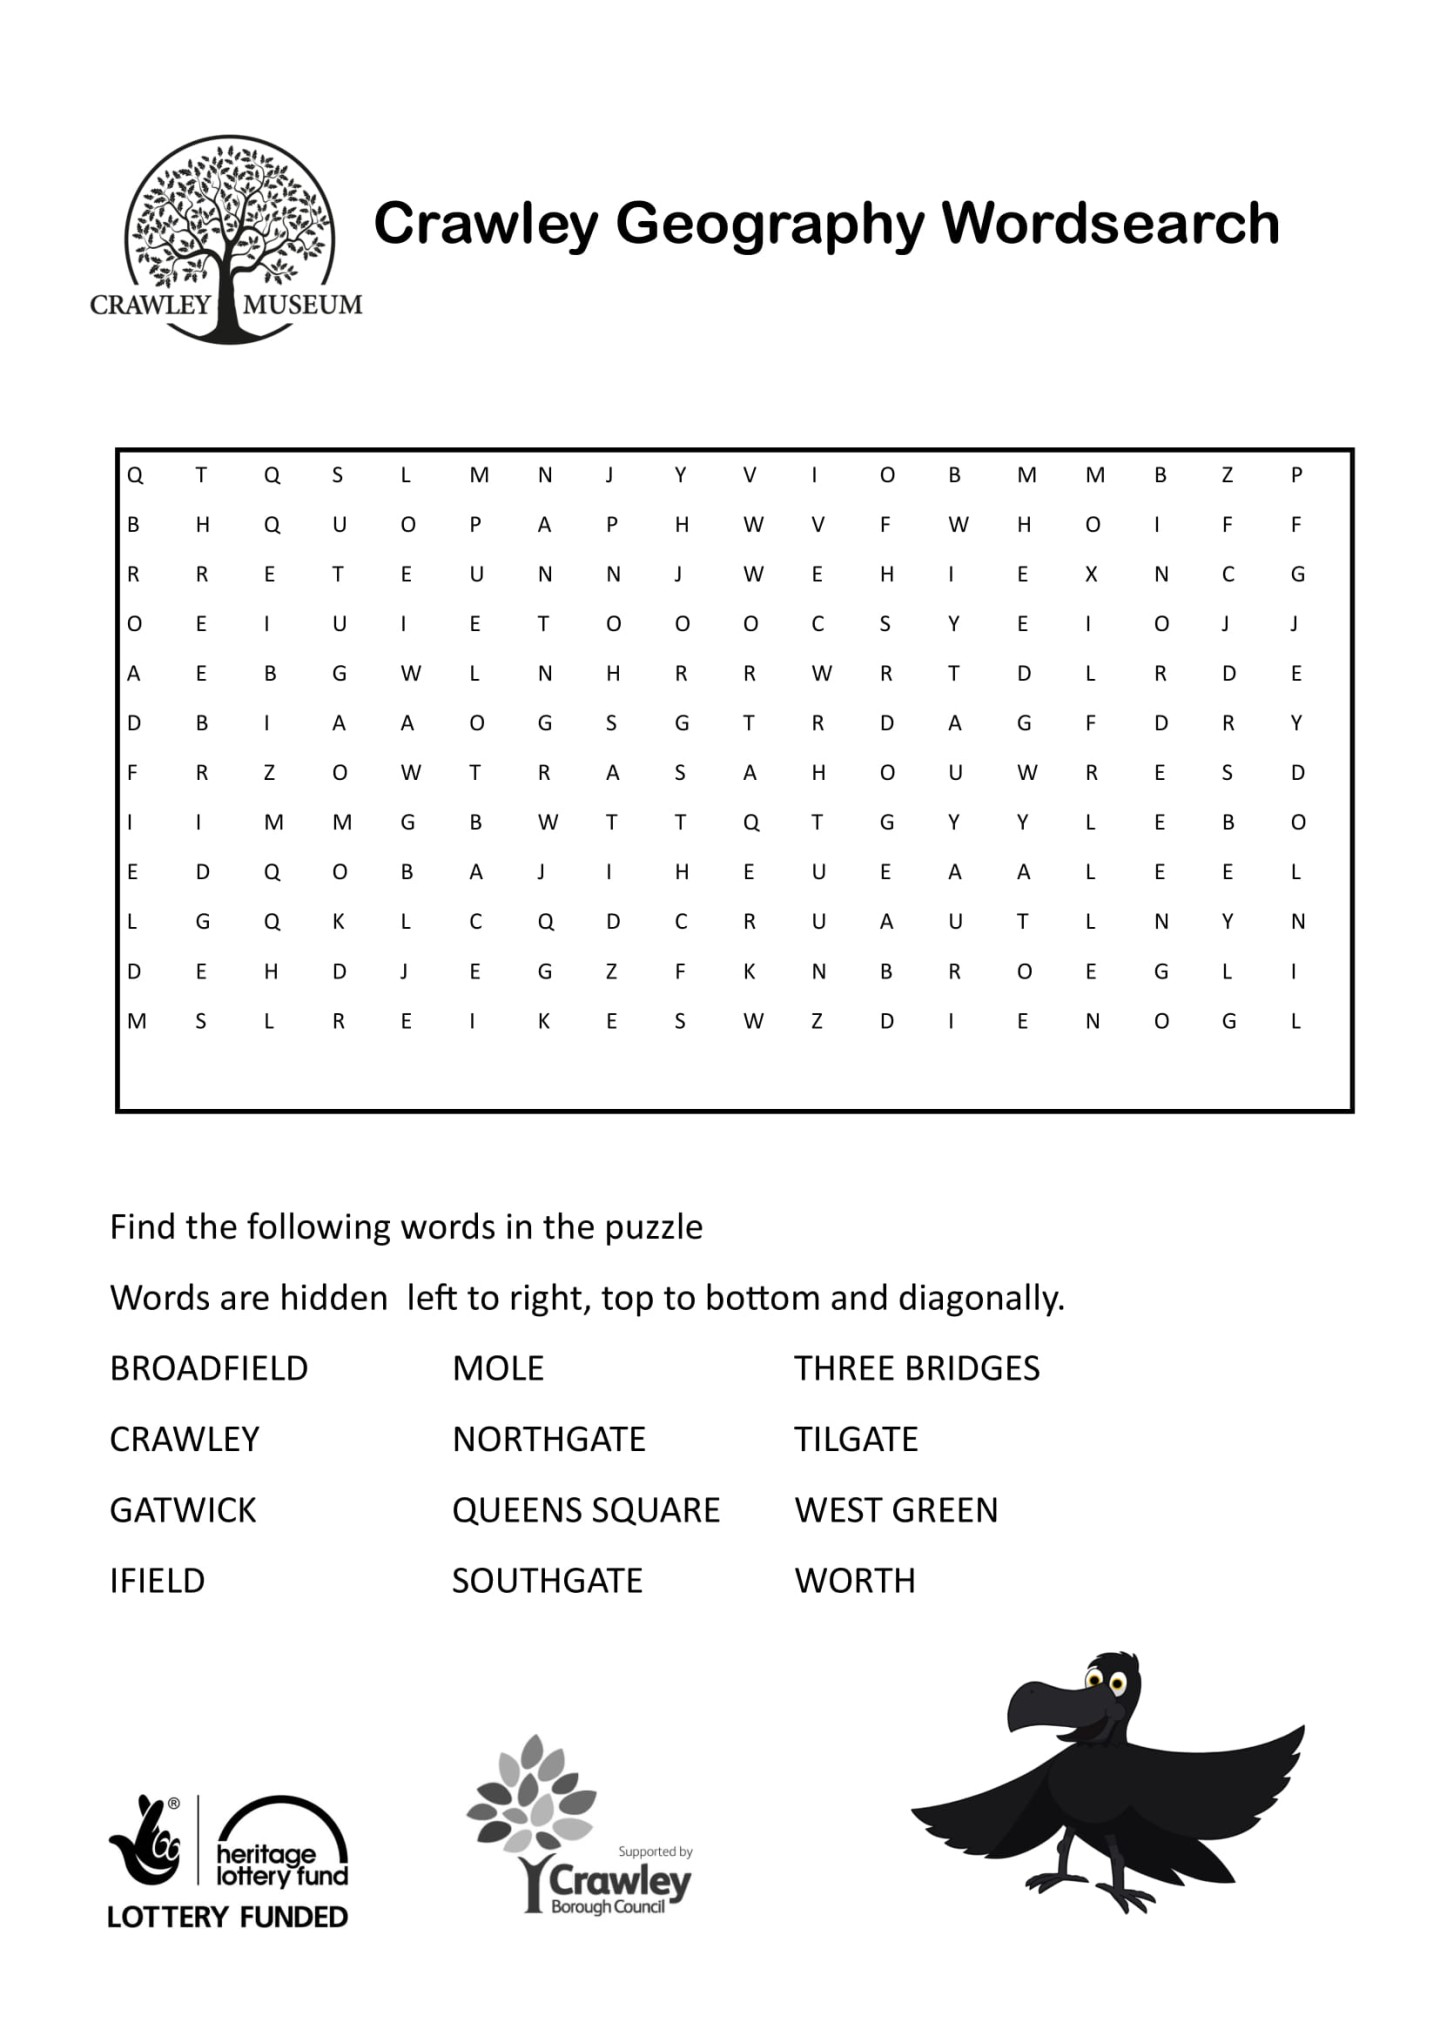 Crawley Geography Wordsearch-1